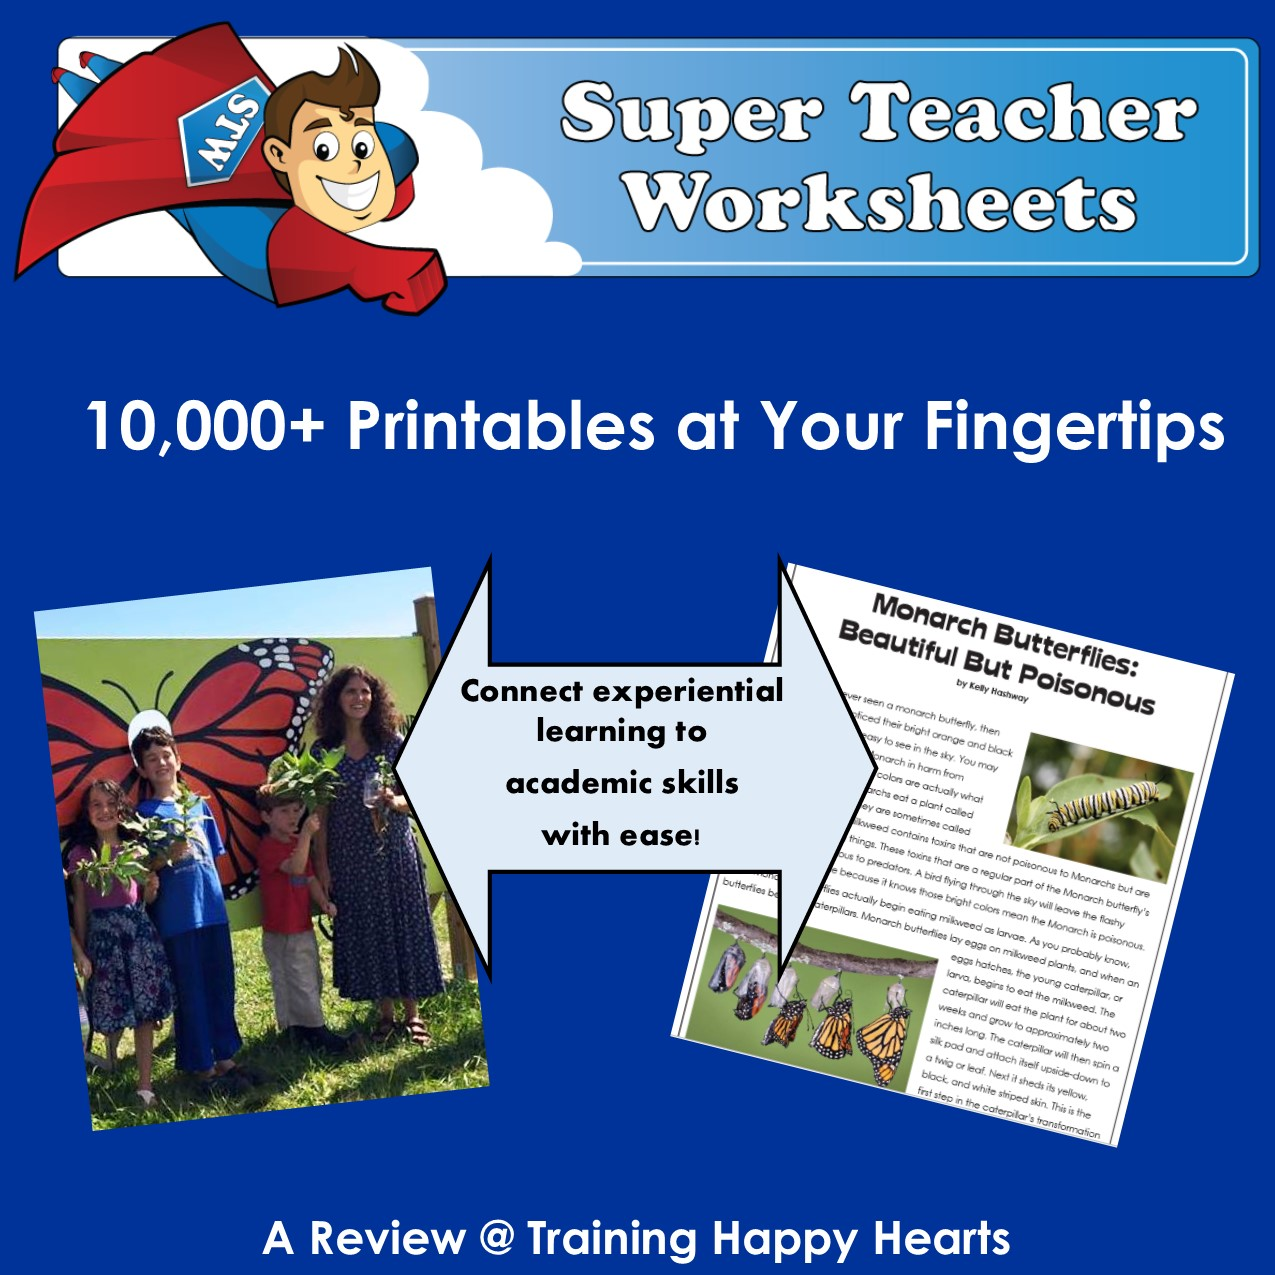 Collection of Super Teacher Worksheets Login - Sharebrowse